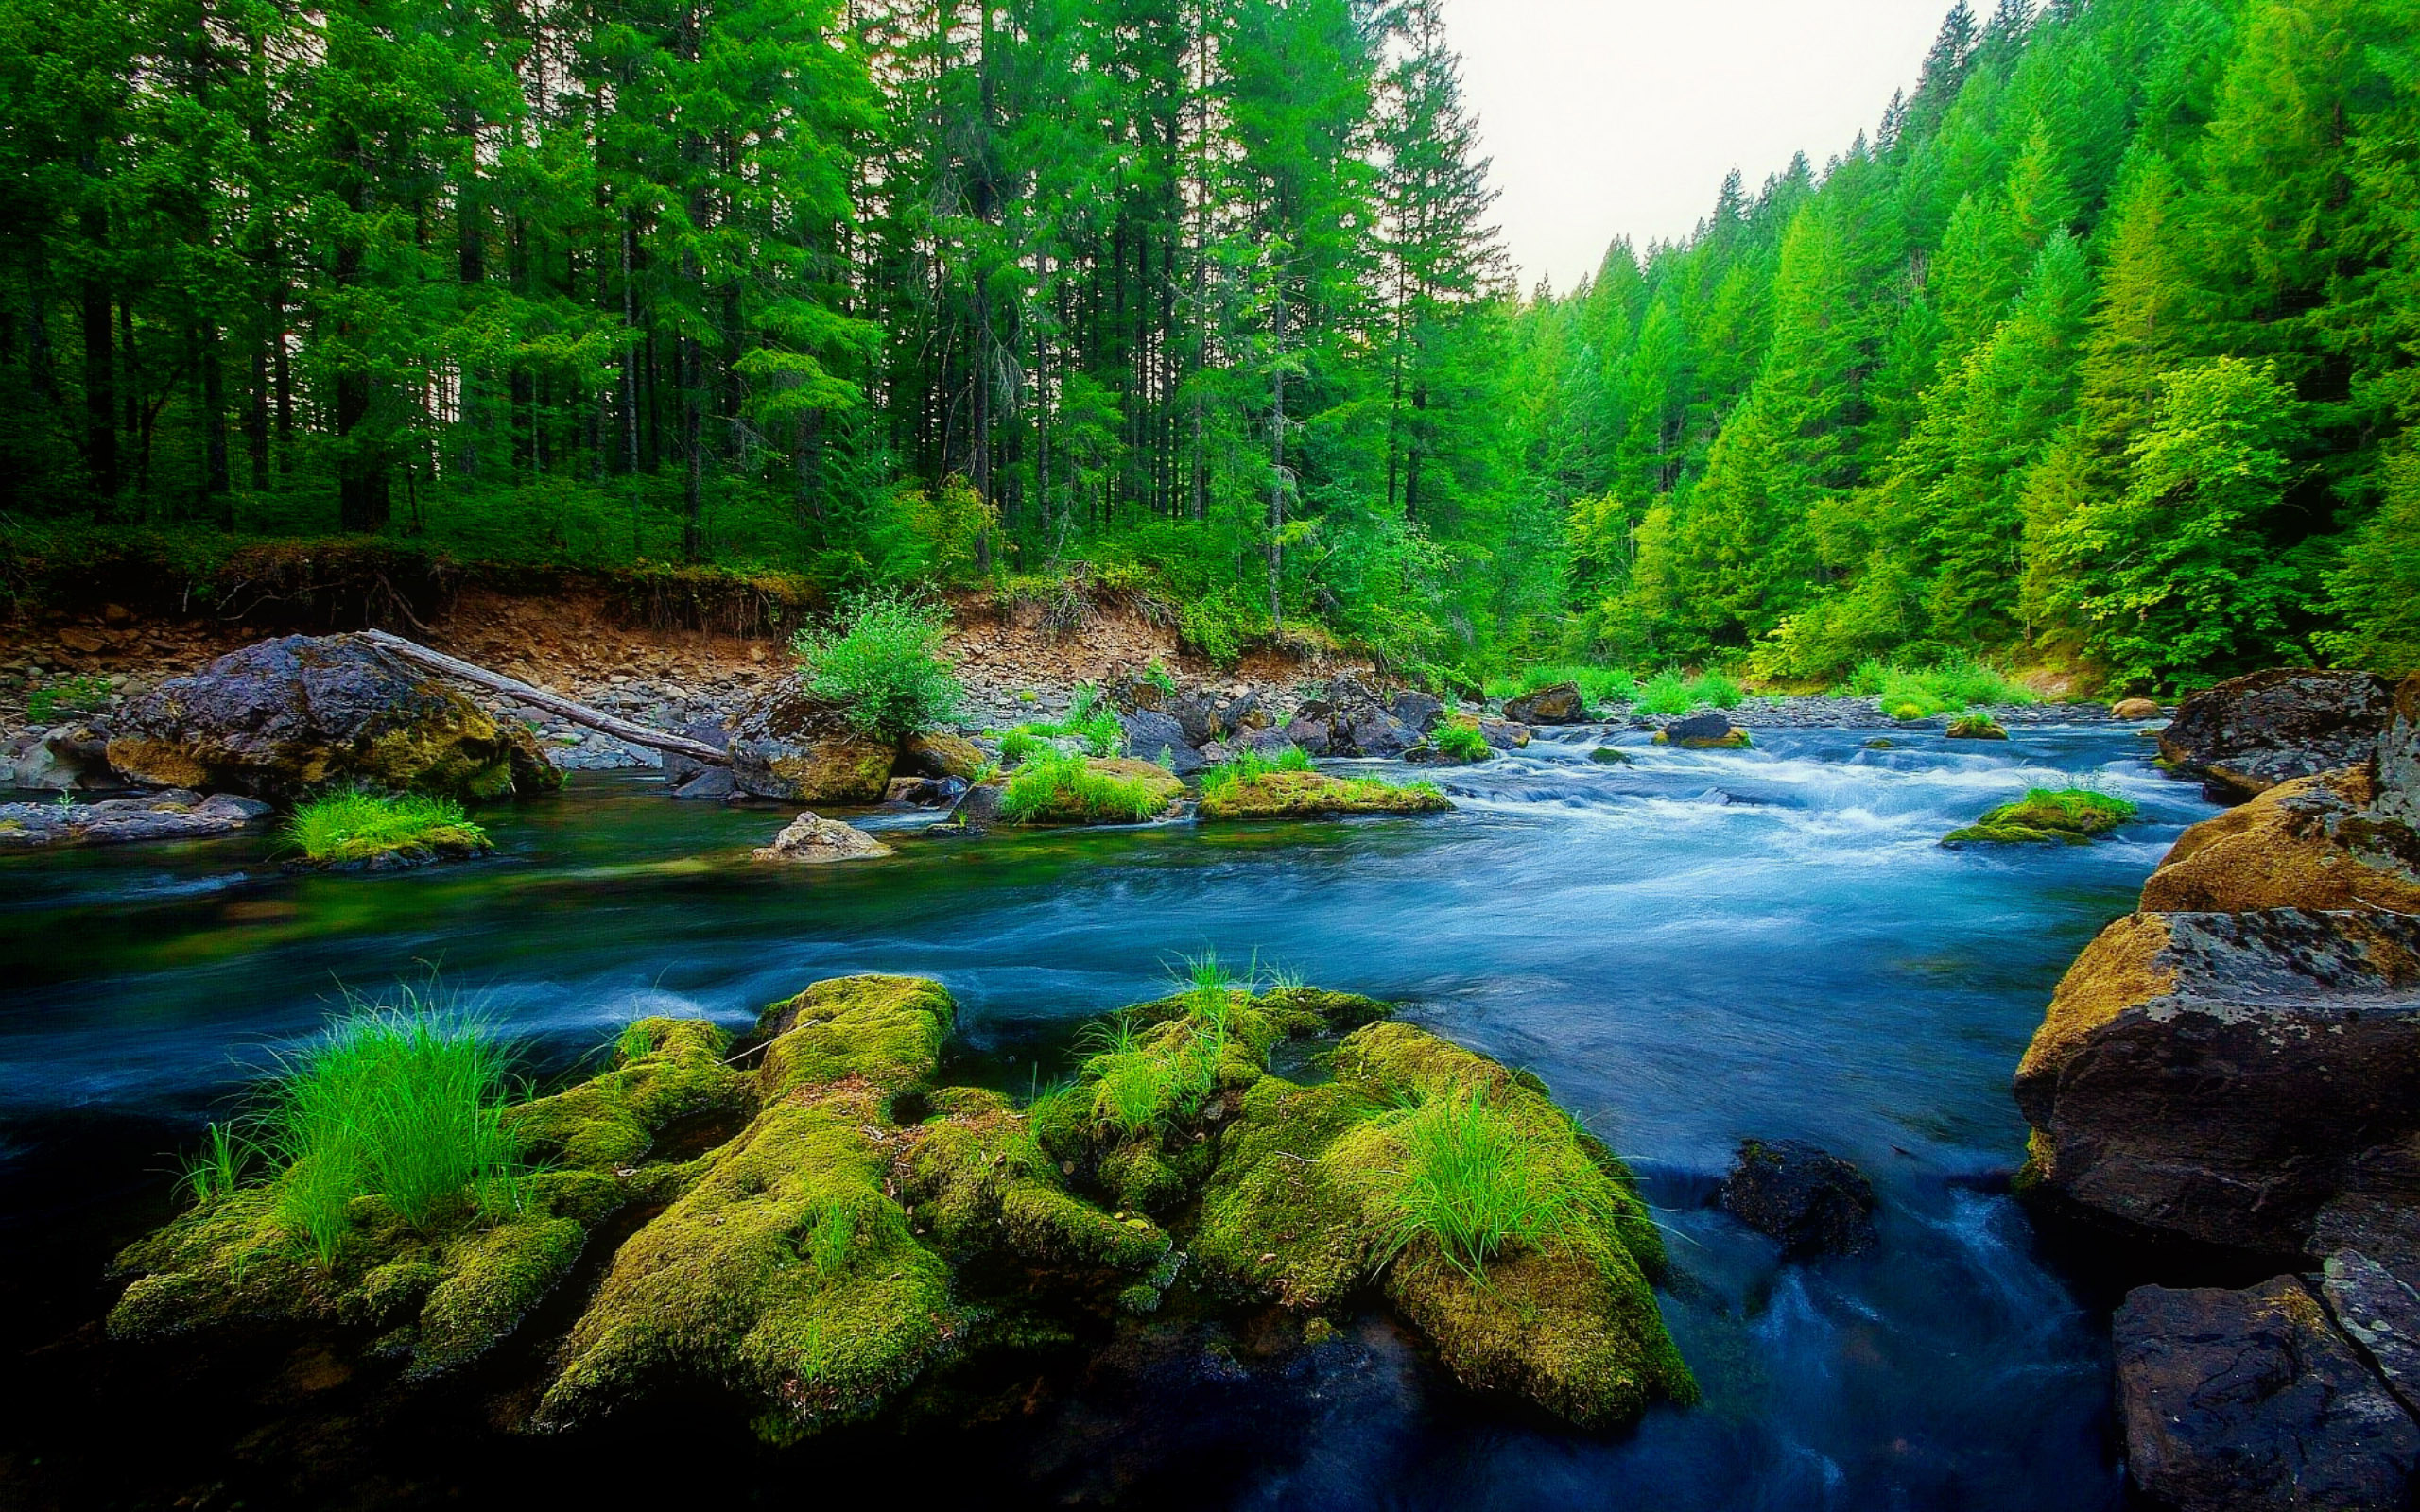 green forest wallpaper hd,body of water,nature,natural landscape,water resources,river